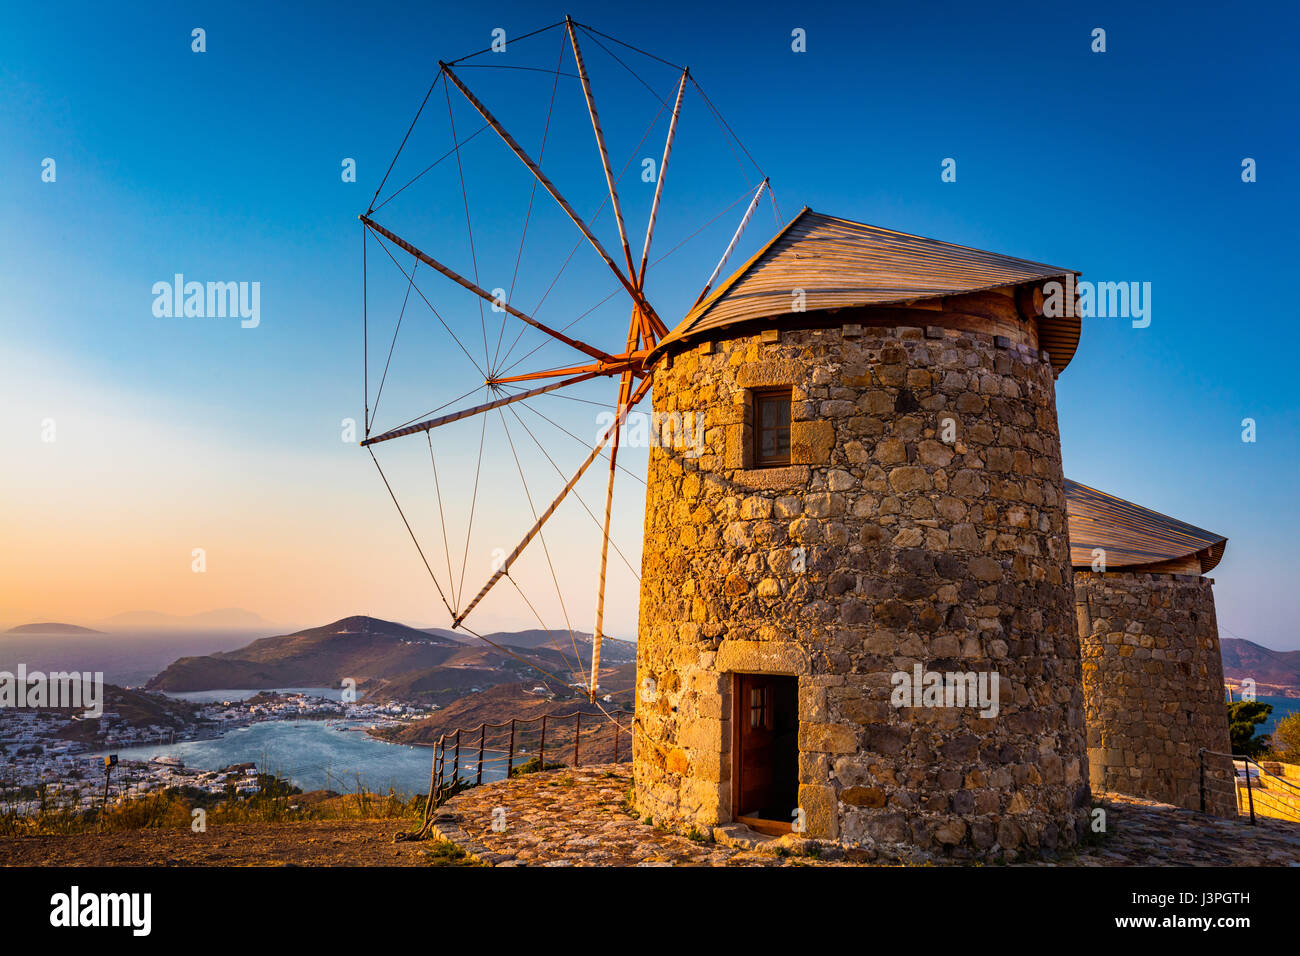 Windmills on the Greek island of Patmos. Patmos is a small Greek island in the Aegean Sea, most famous for being - Stock Image